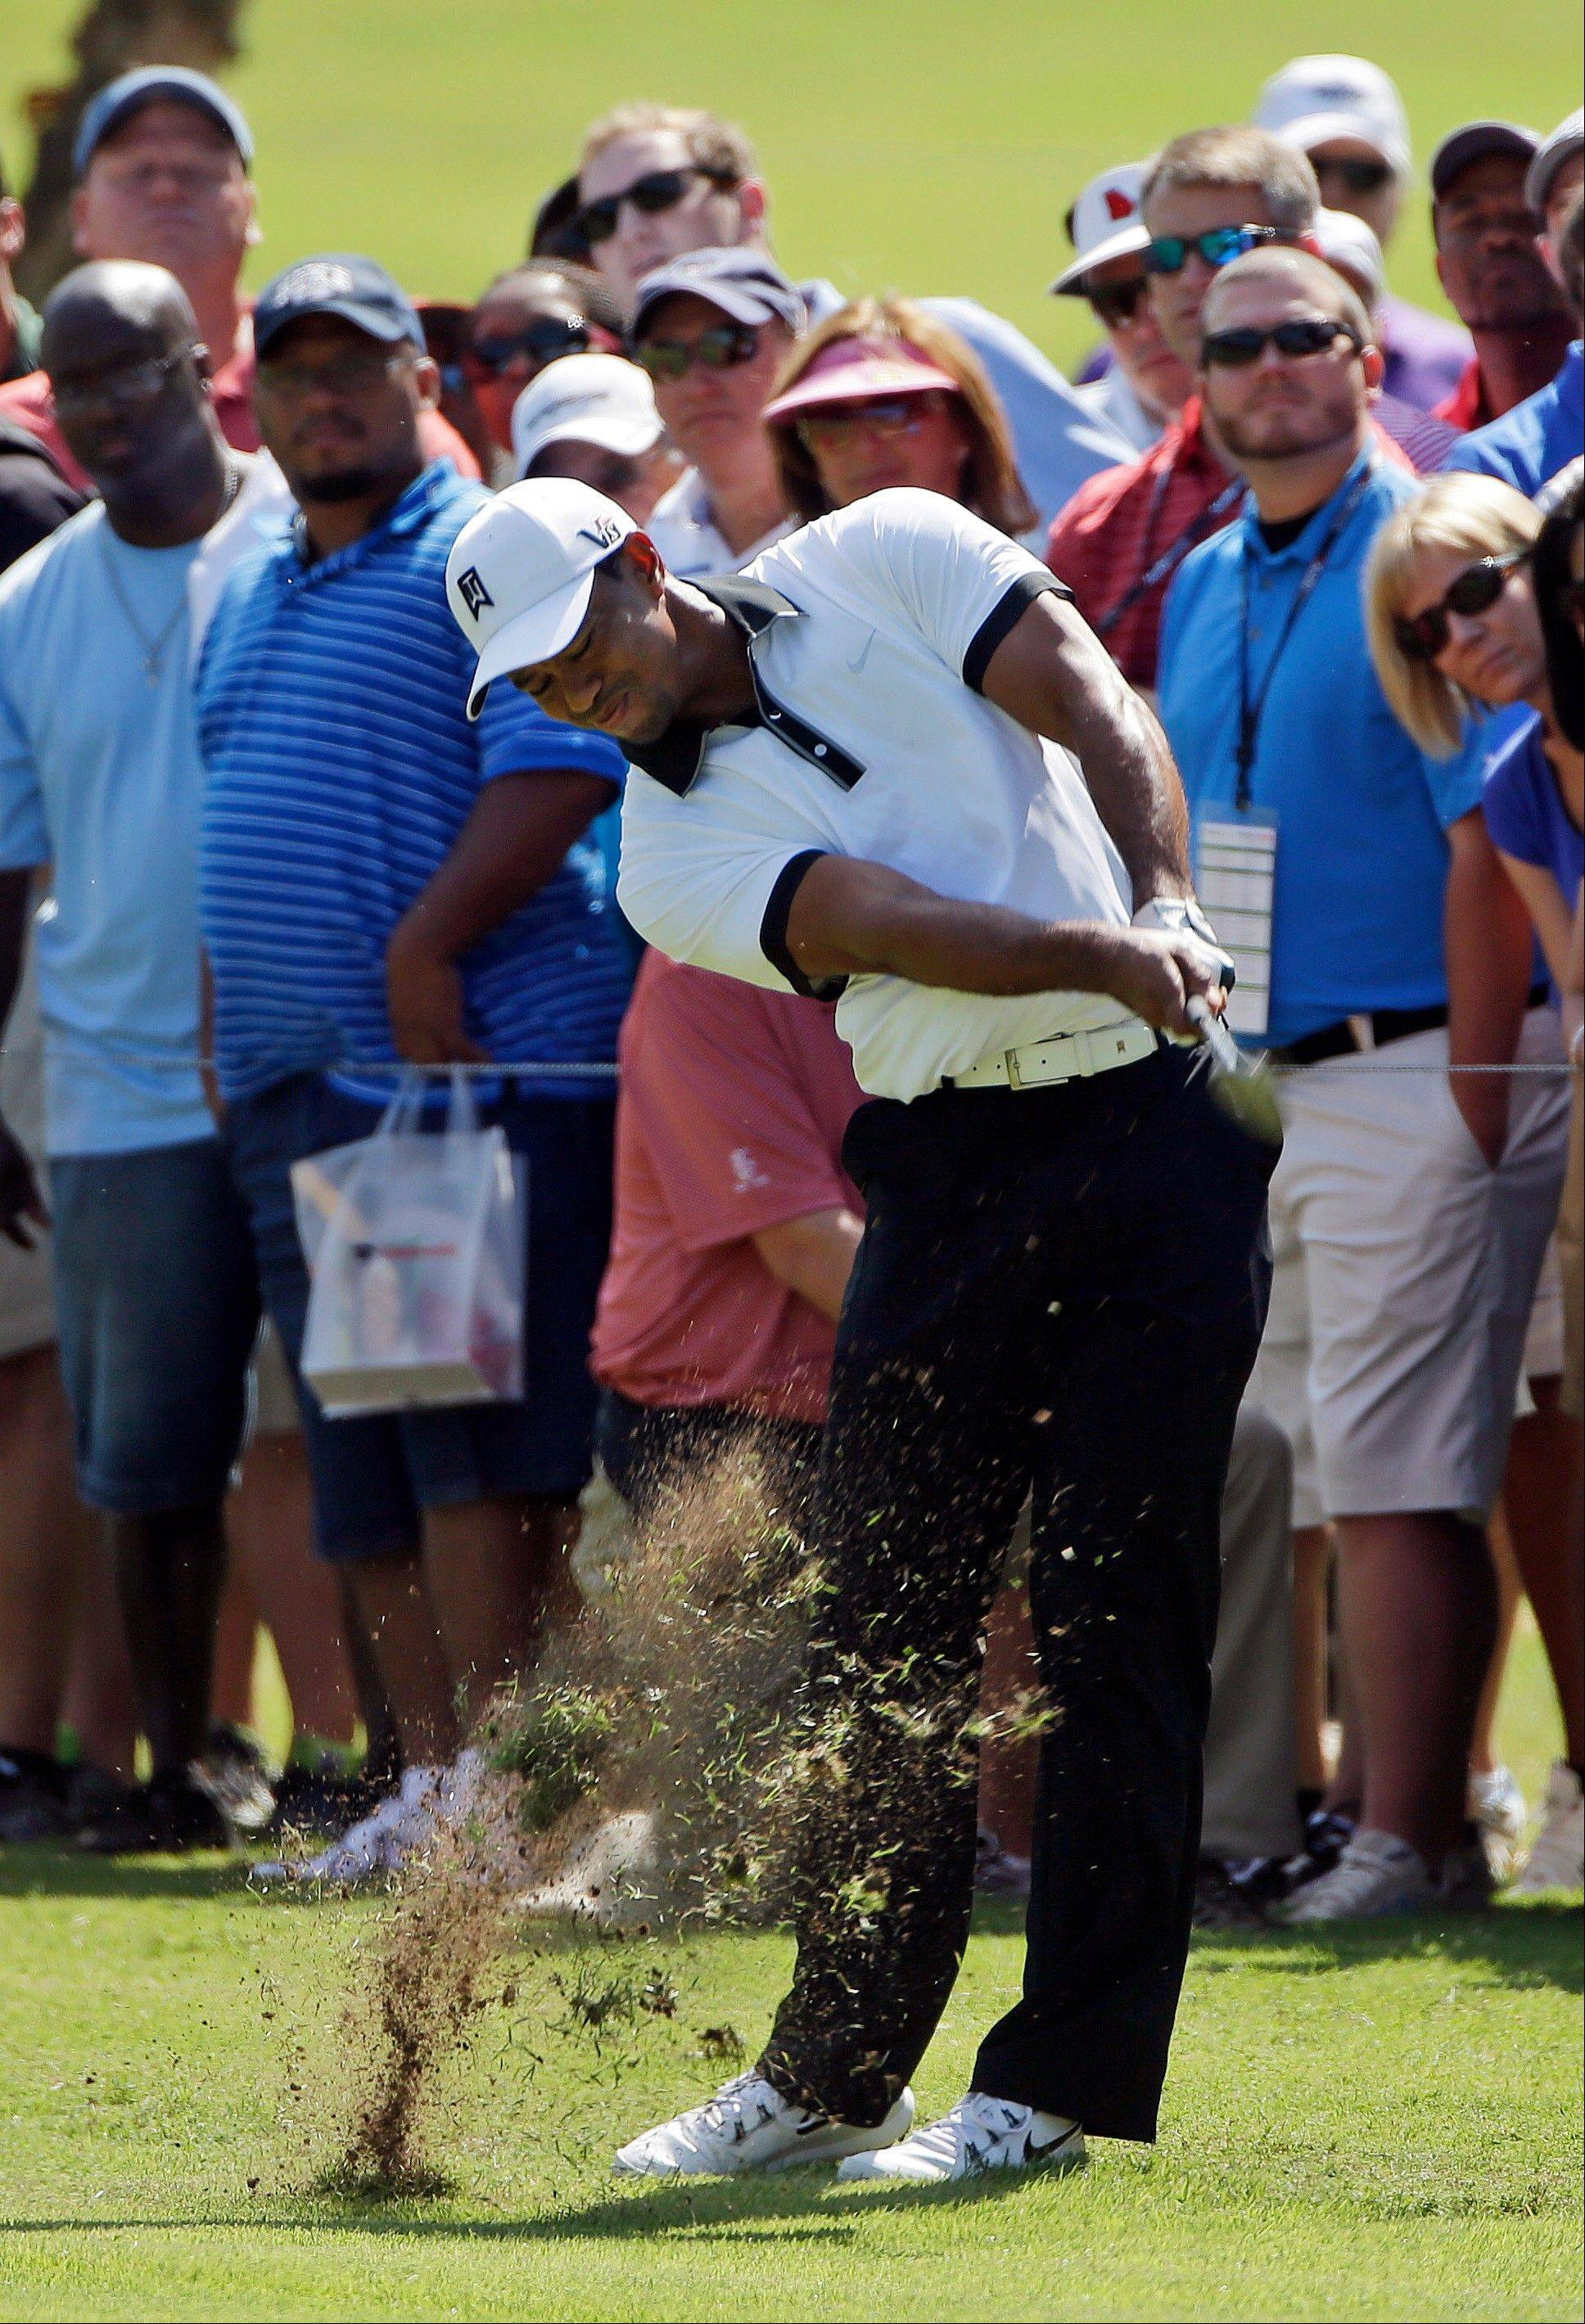 Tiger Woods hits from the rough Friday at the Tour Championship tournament at East Lake Golf Club in Atlanta. He finished the round with a 71.